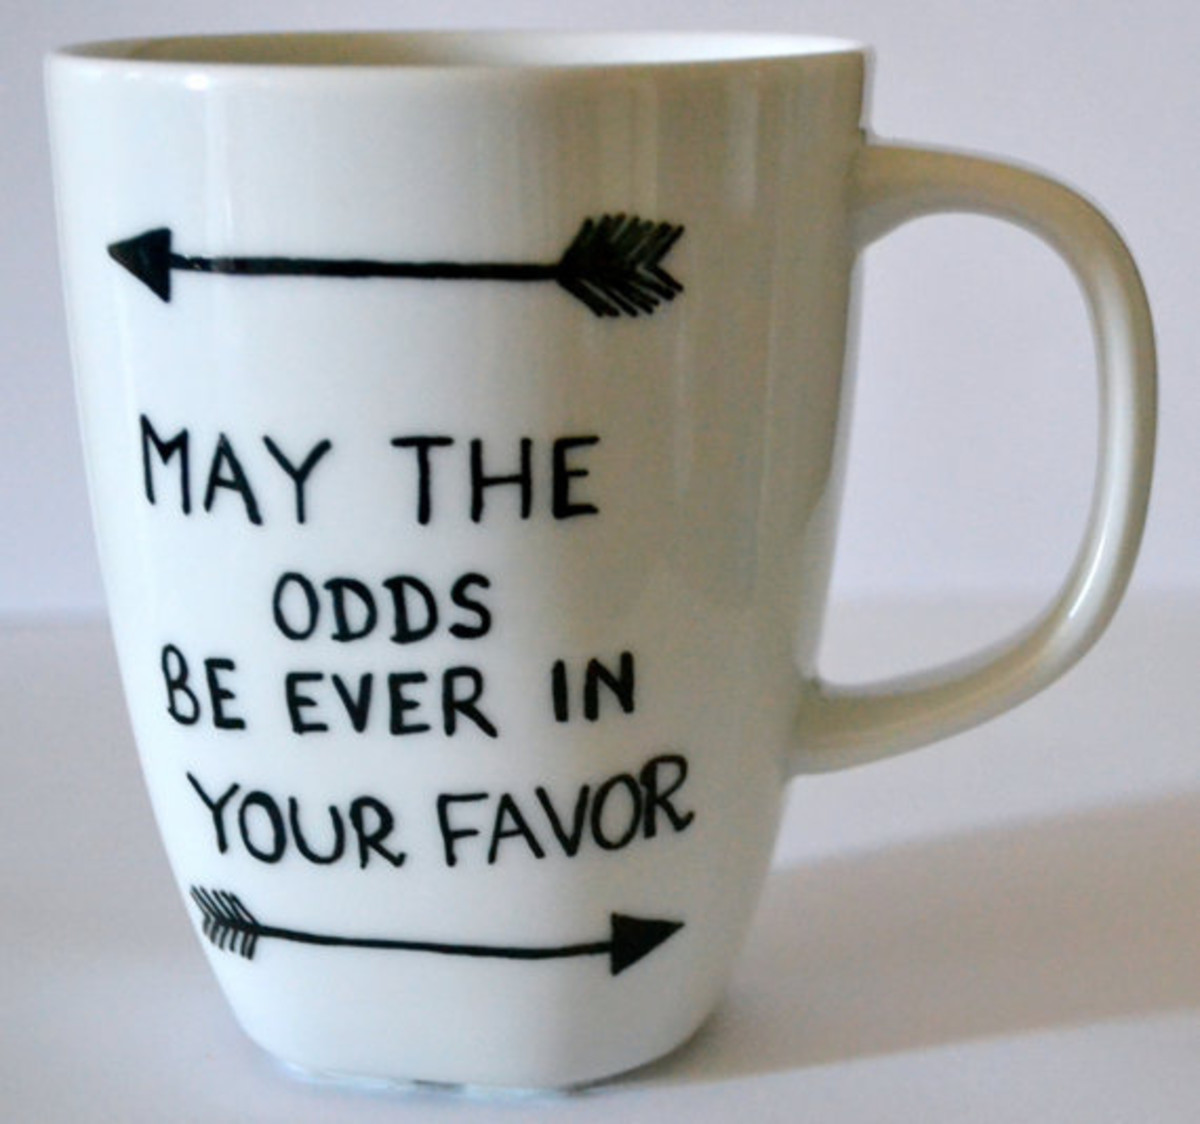 The Hunger Games mug